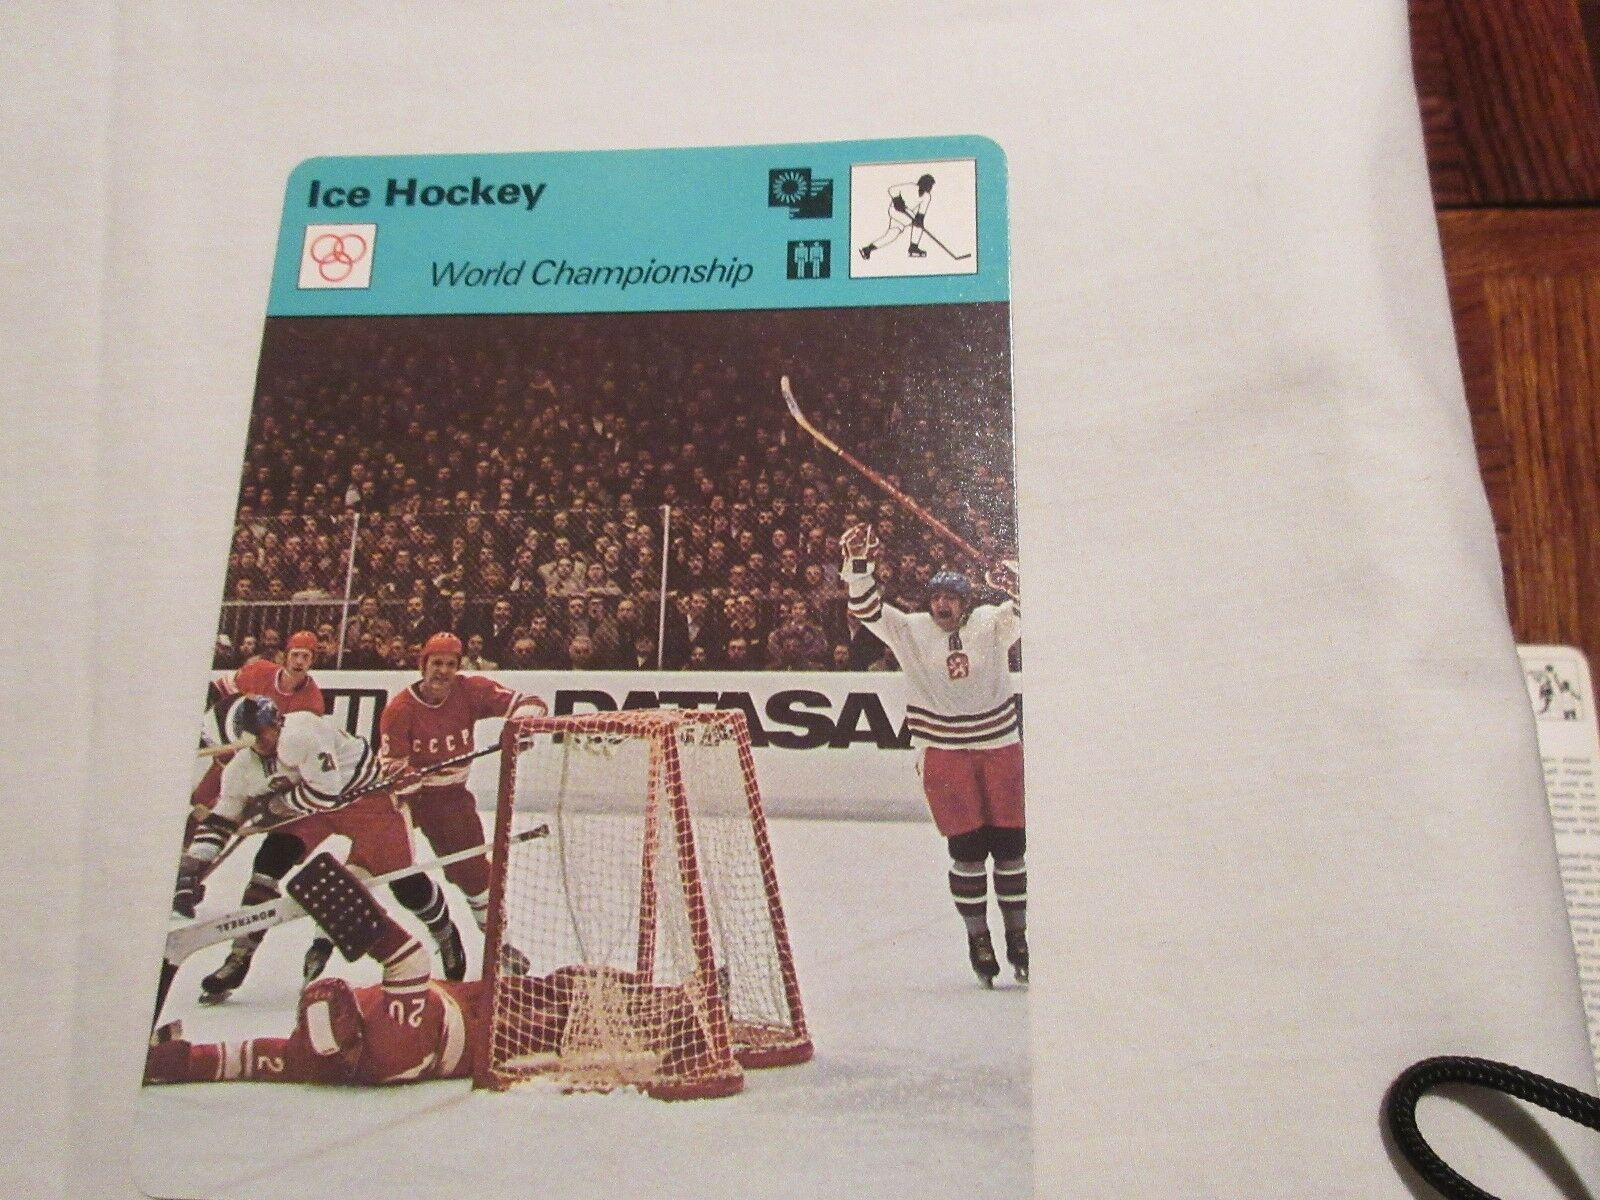 Sportscaster Cards 1978 Deck # 12 Cards # 1-24 Angel Co